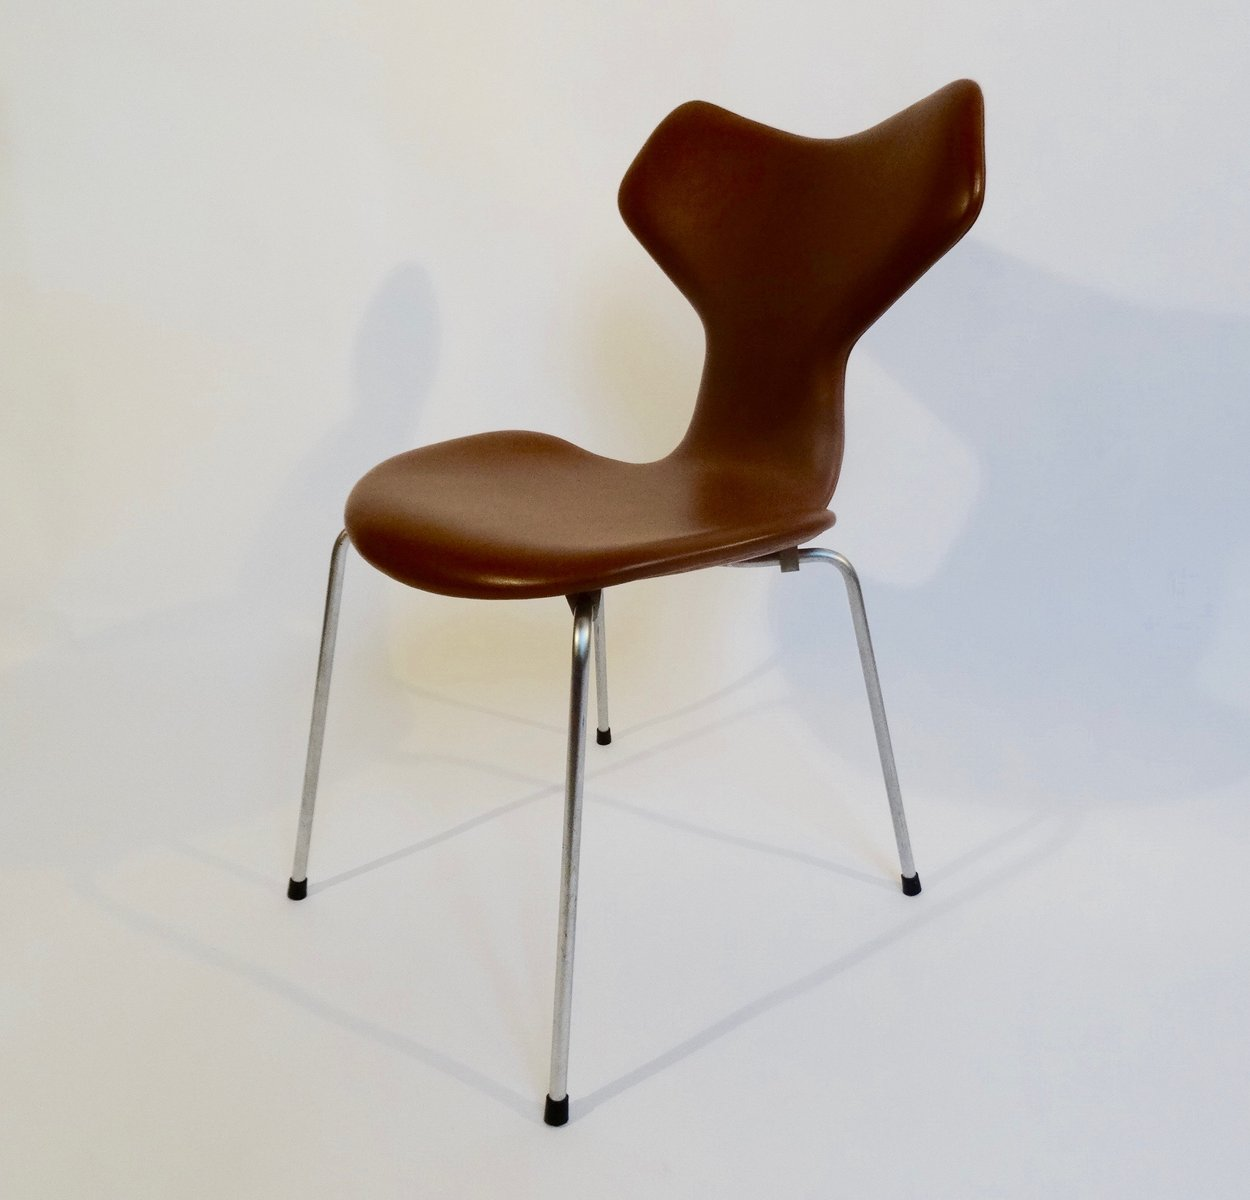 grand prix chair by arne jacobsen for fritz hansen 1964. Black Bedroom Furniture Sets. Home Design Ideas